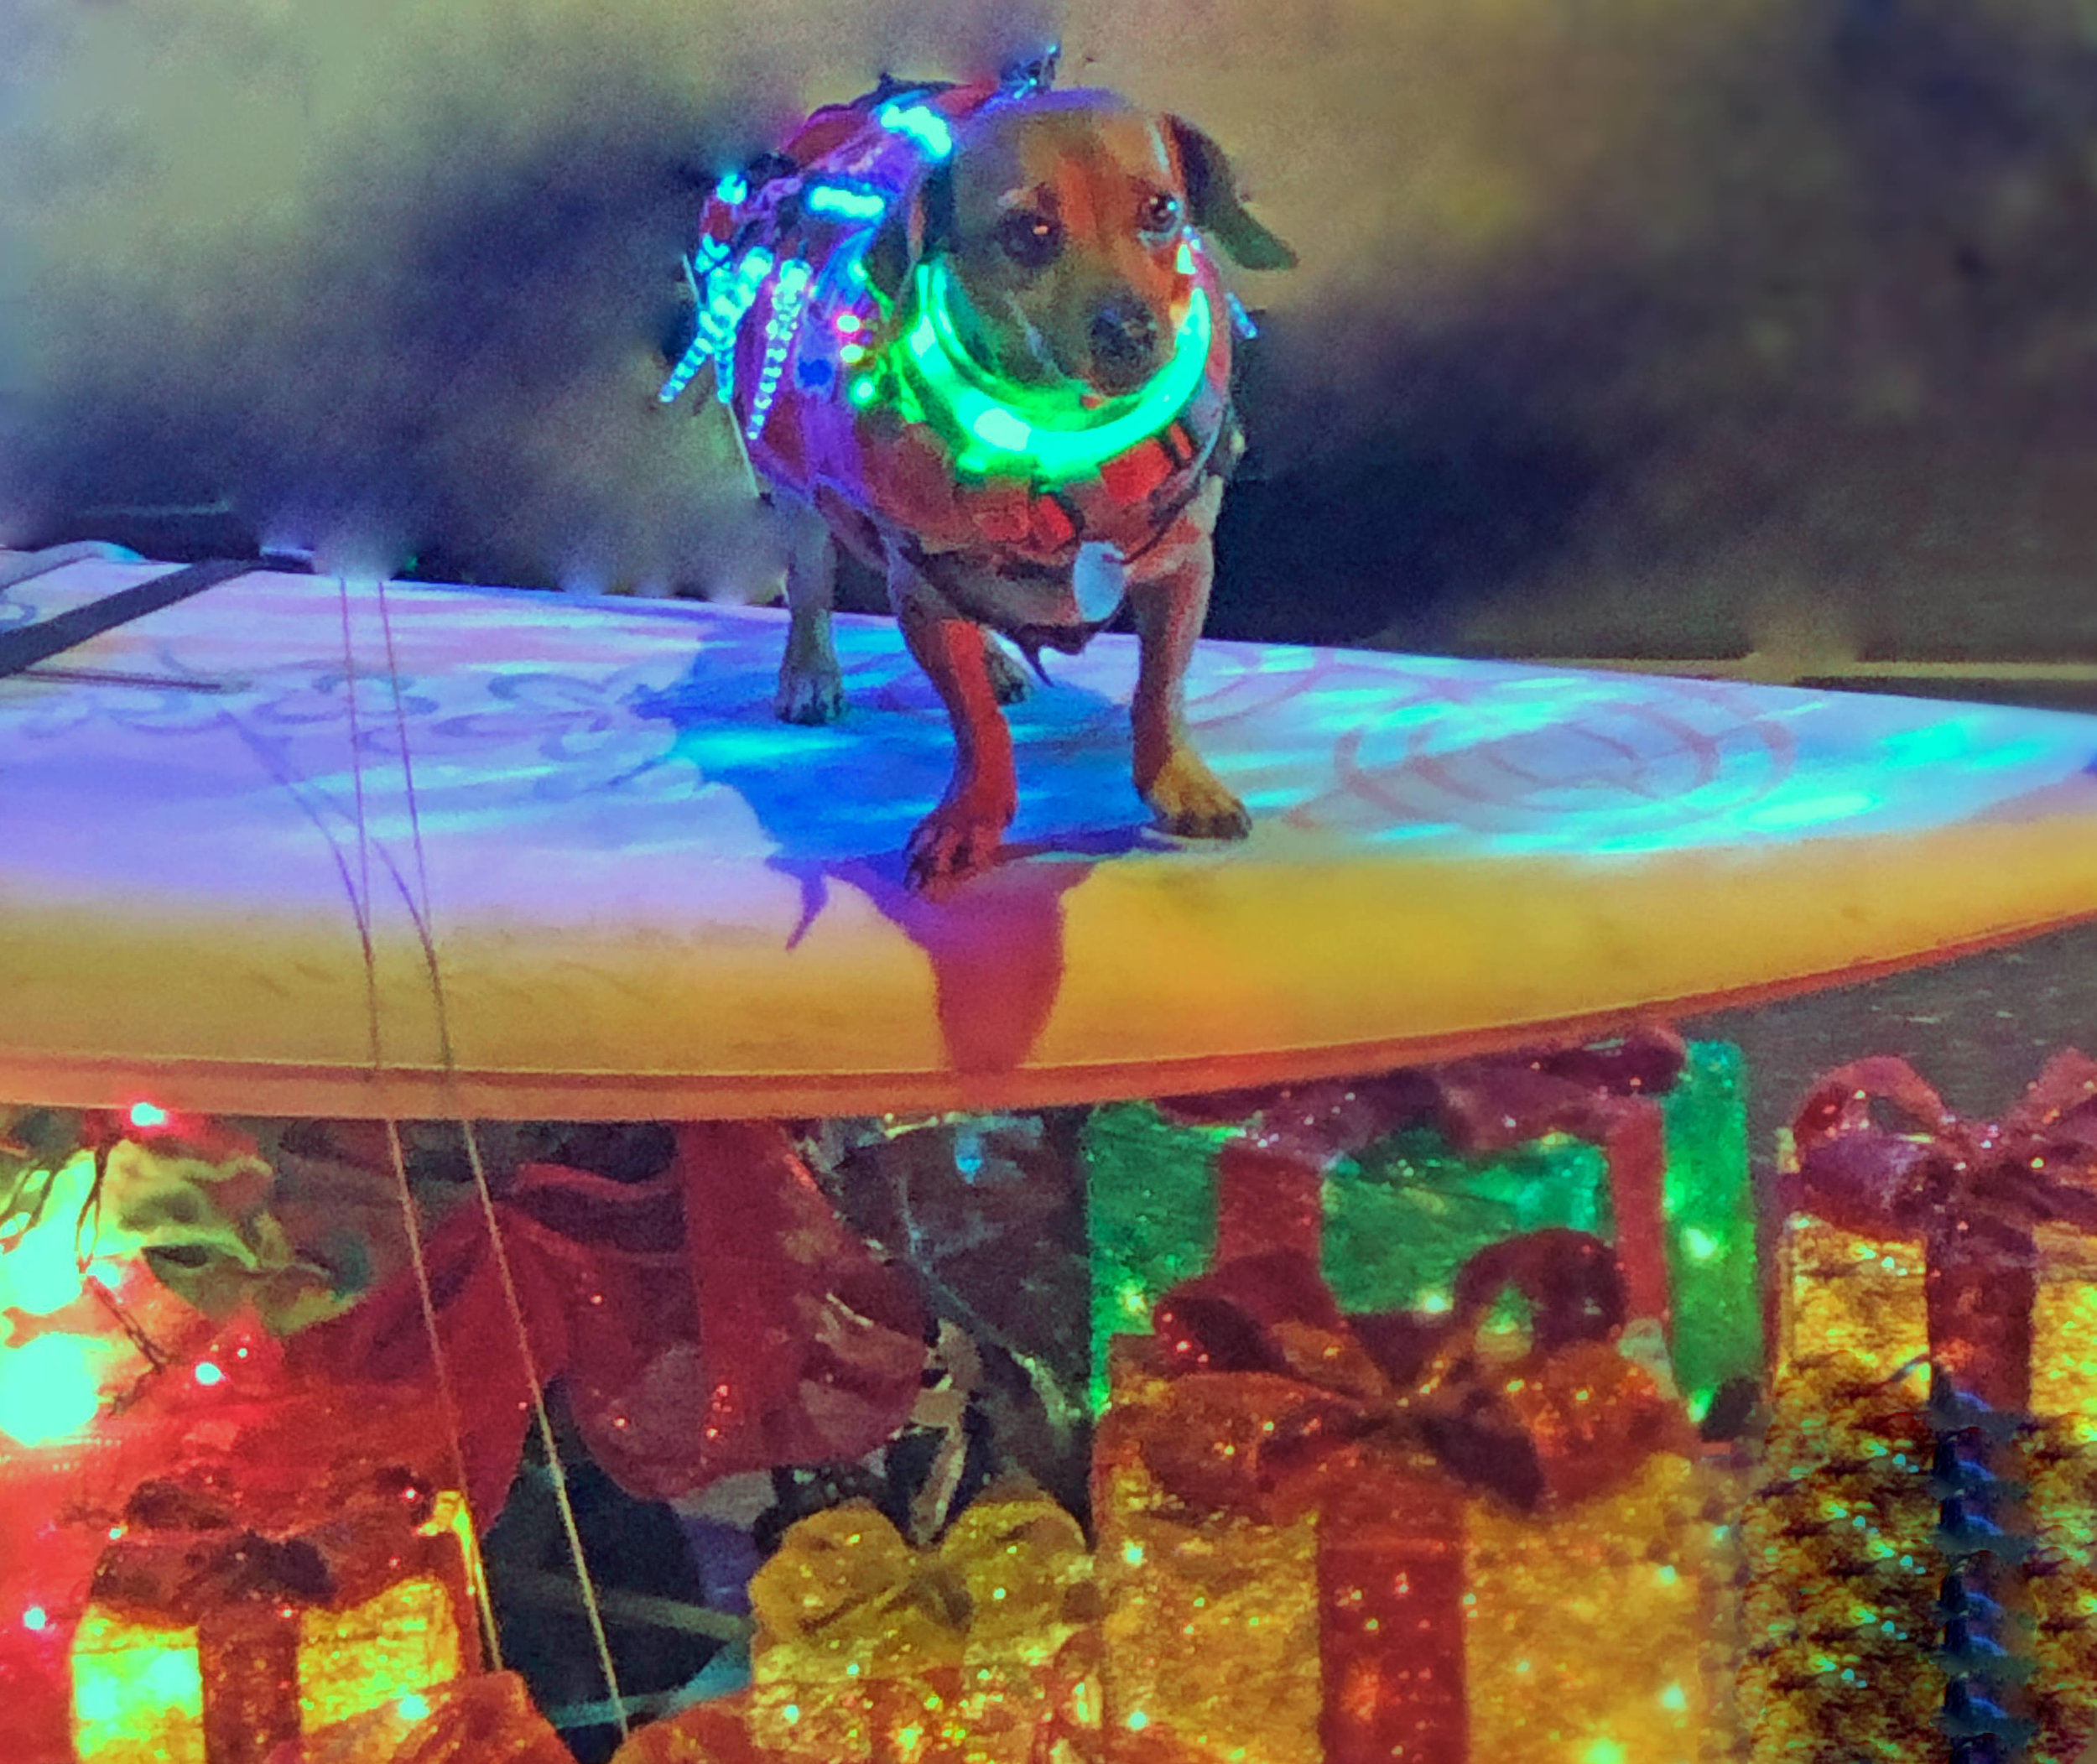 My dog son, surf doxie Doodle, and his rad rig. Photo: (c) Barb Ayers, DogDiary.org